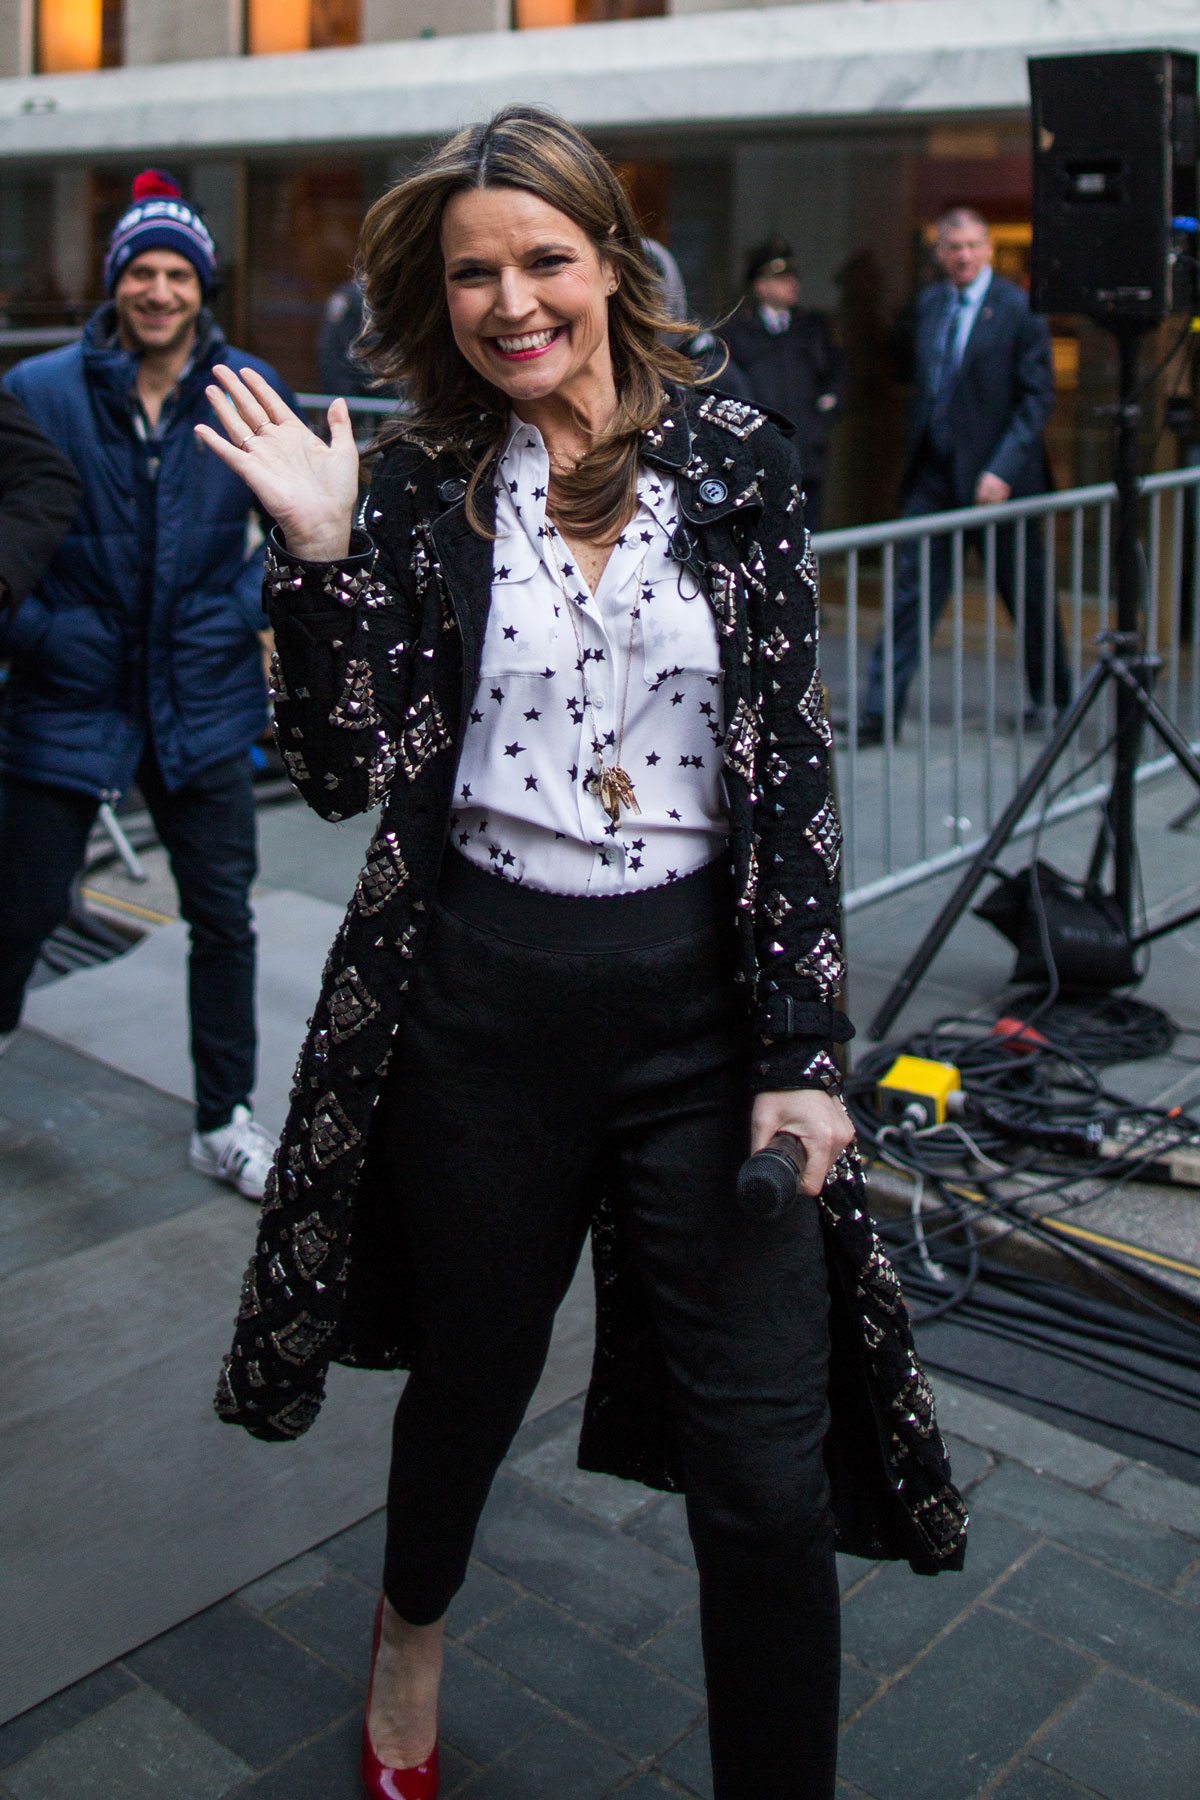 Savannah Guthrie at the today show